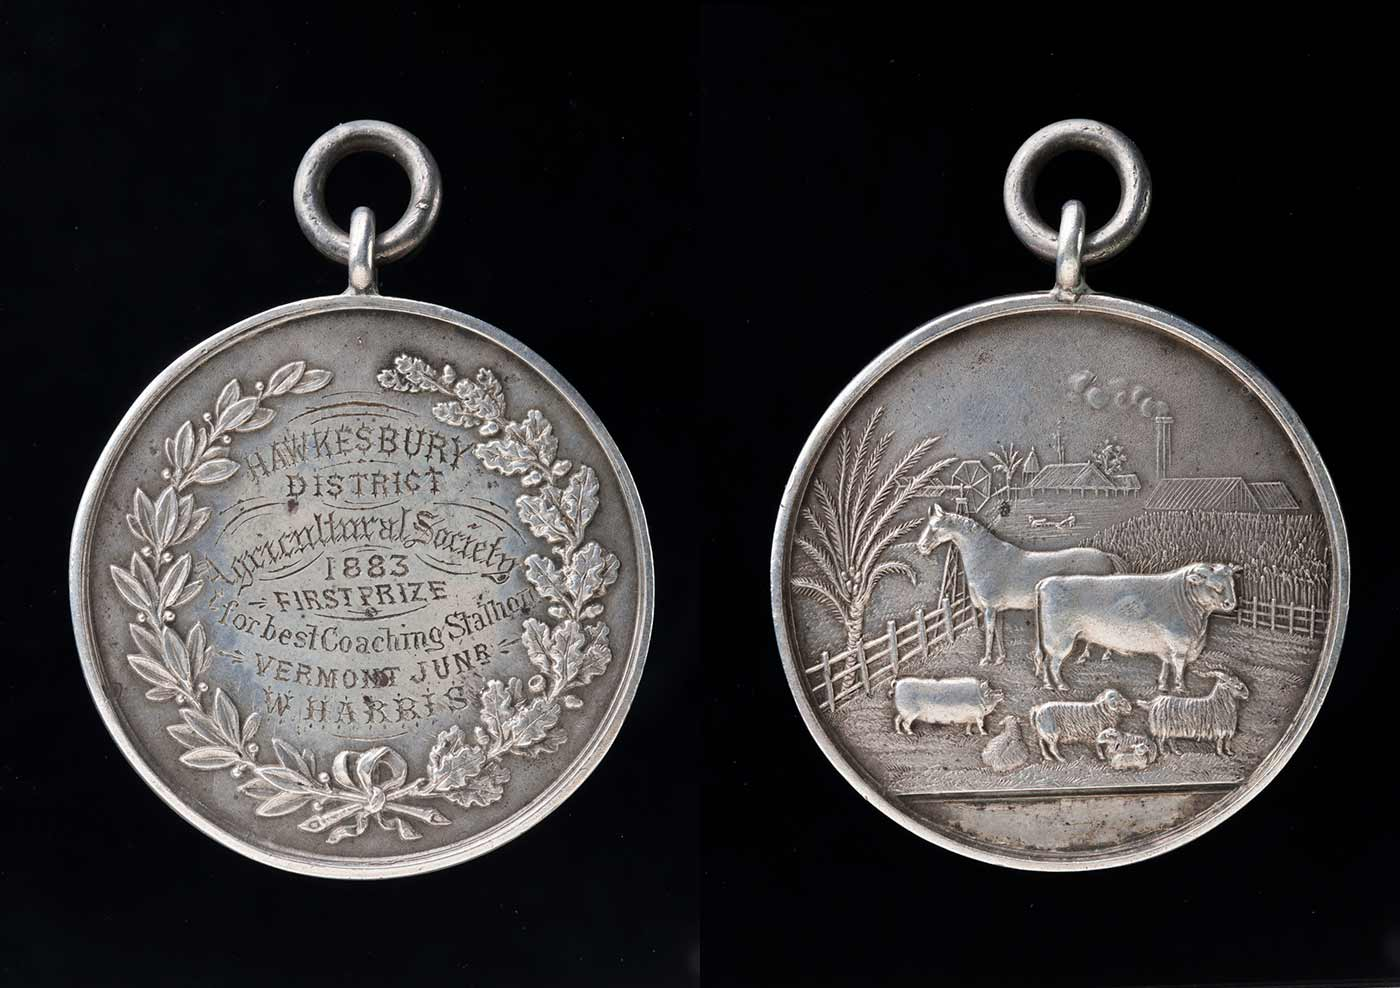 Front and back of a silver prize medal. The front has a laurel leaf border and text inscribed 'Hawkesbury District Agricultural Society, 1883, first prize for best coaching stallion, Vermont Junr, W Harris'. The back shows a rural scene with a horse, cow, pig and sheep.